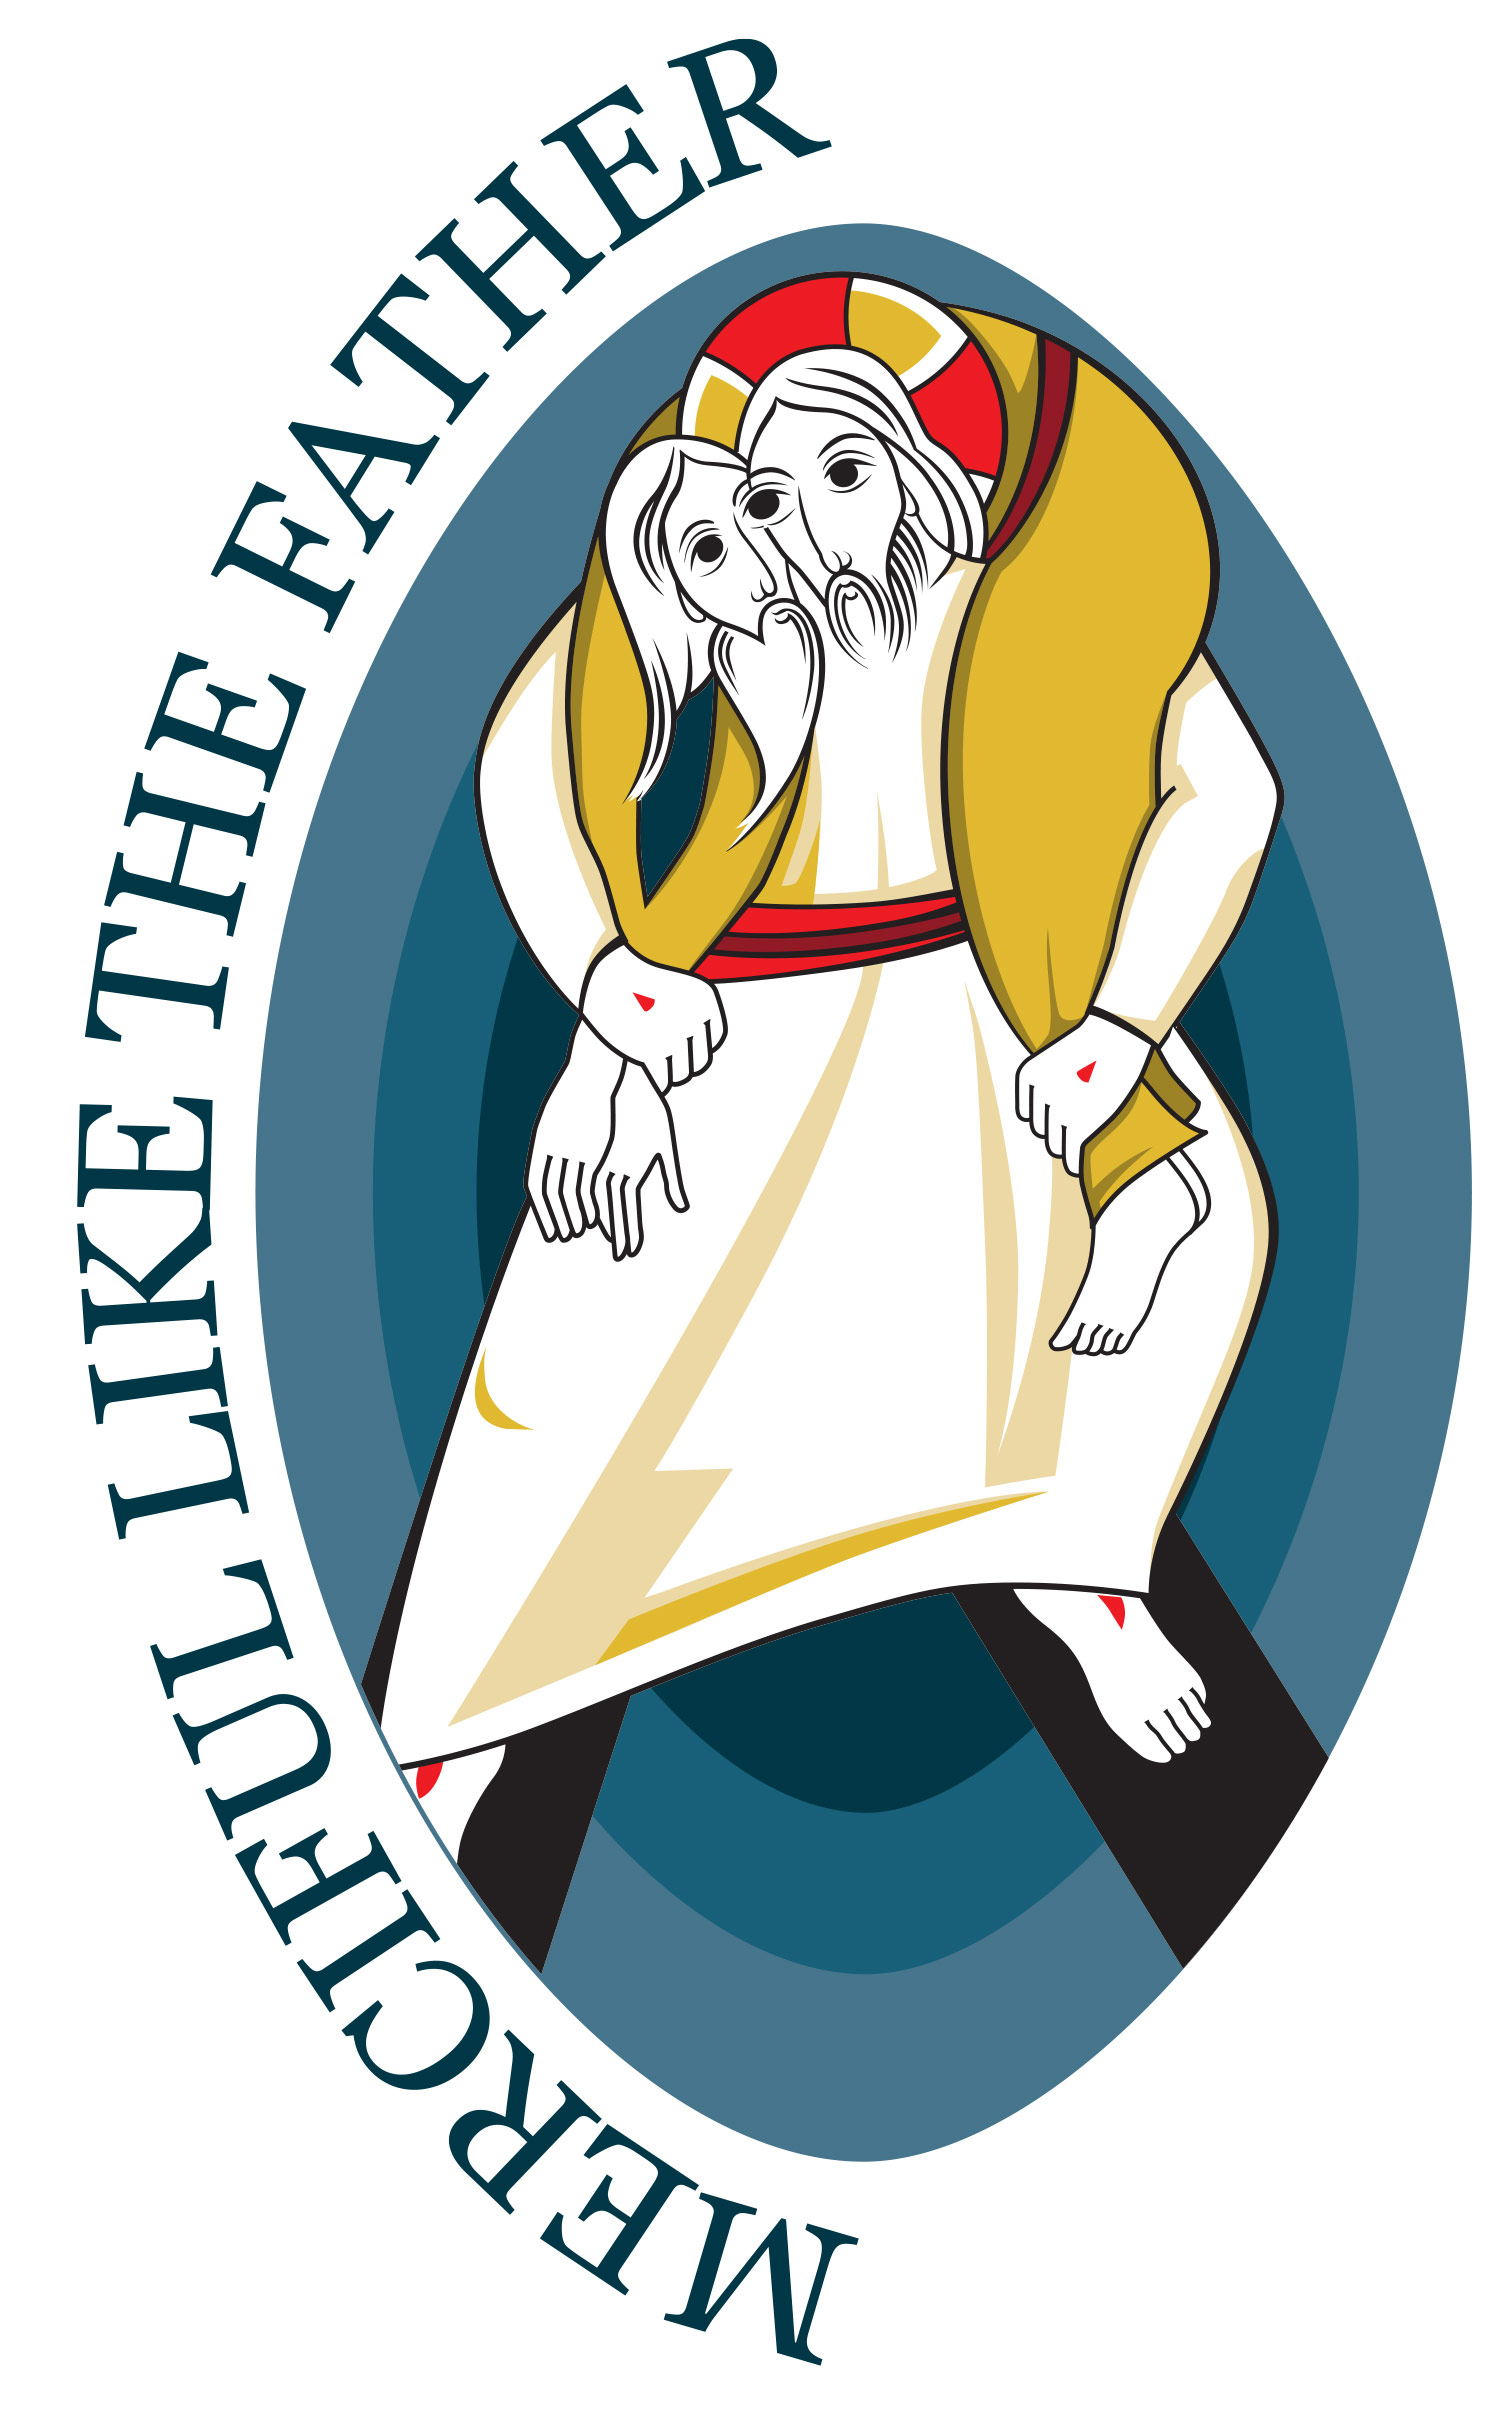 The official logo for the Year of Mercy